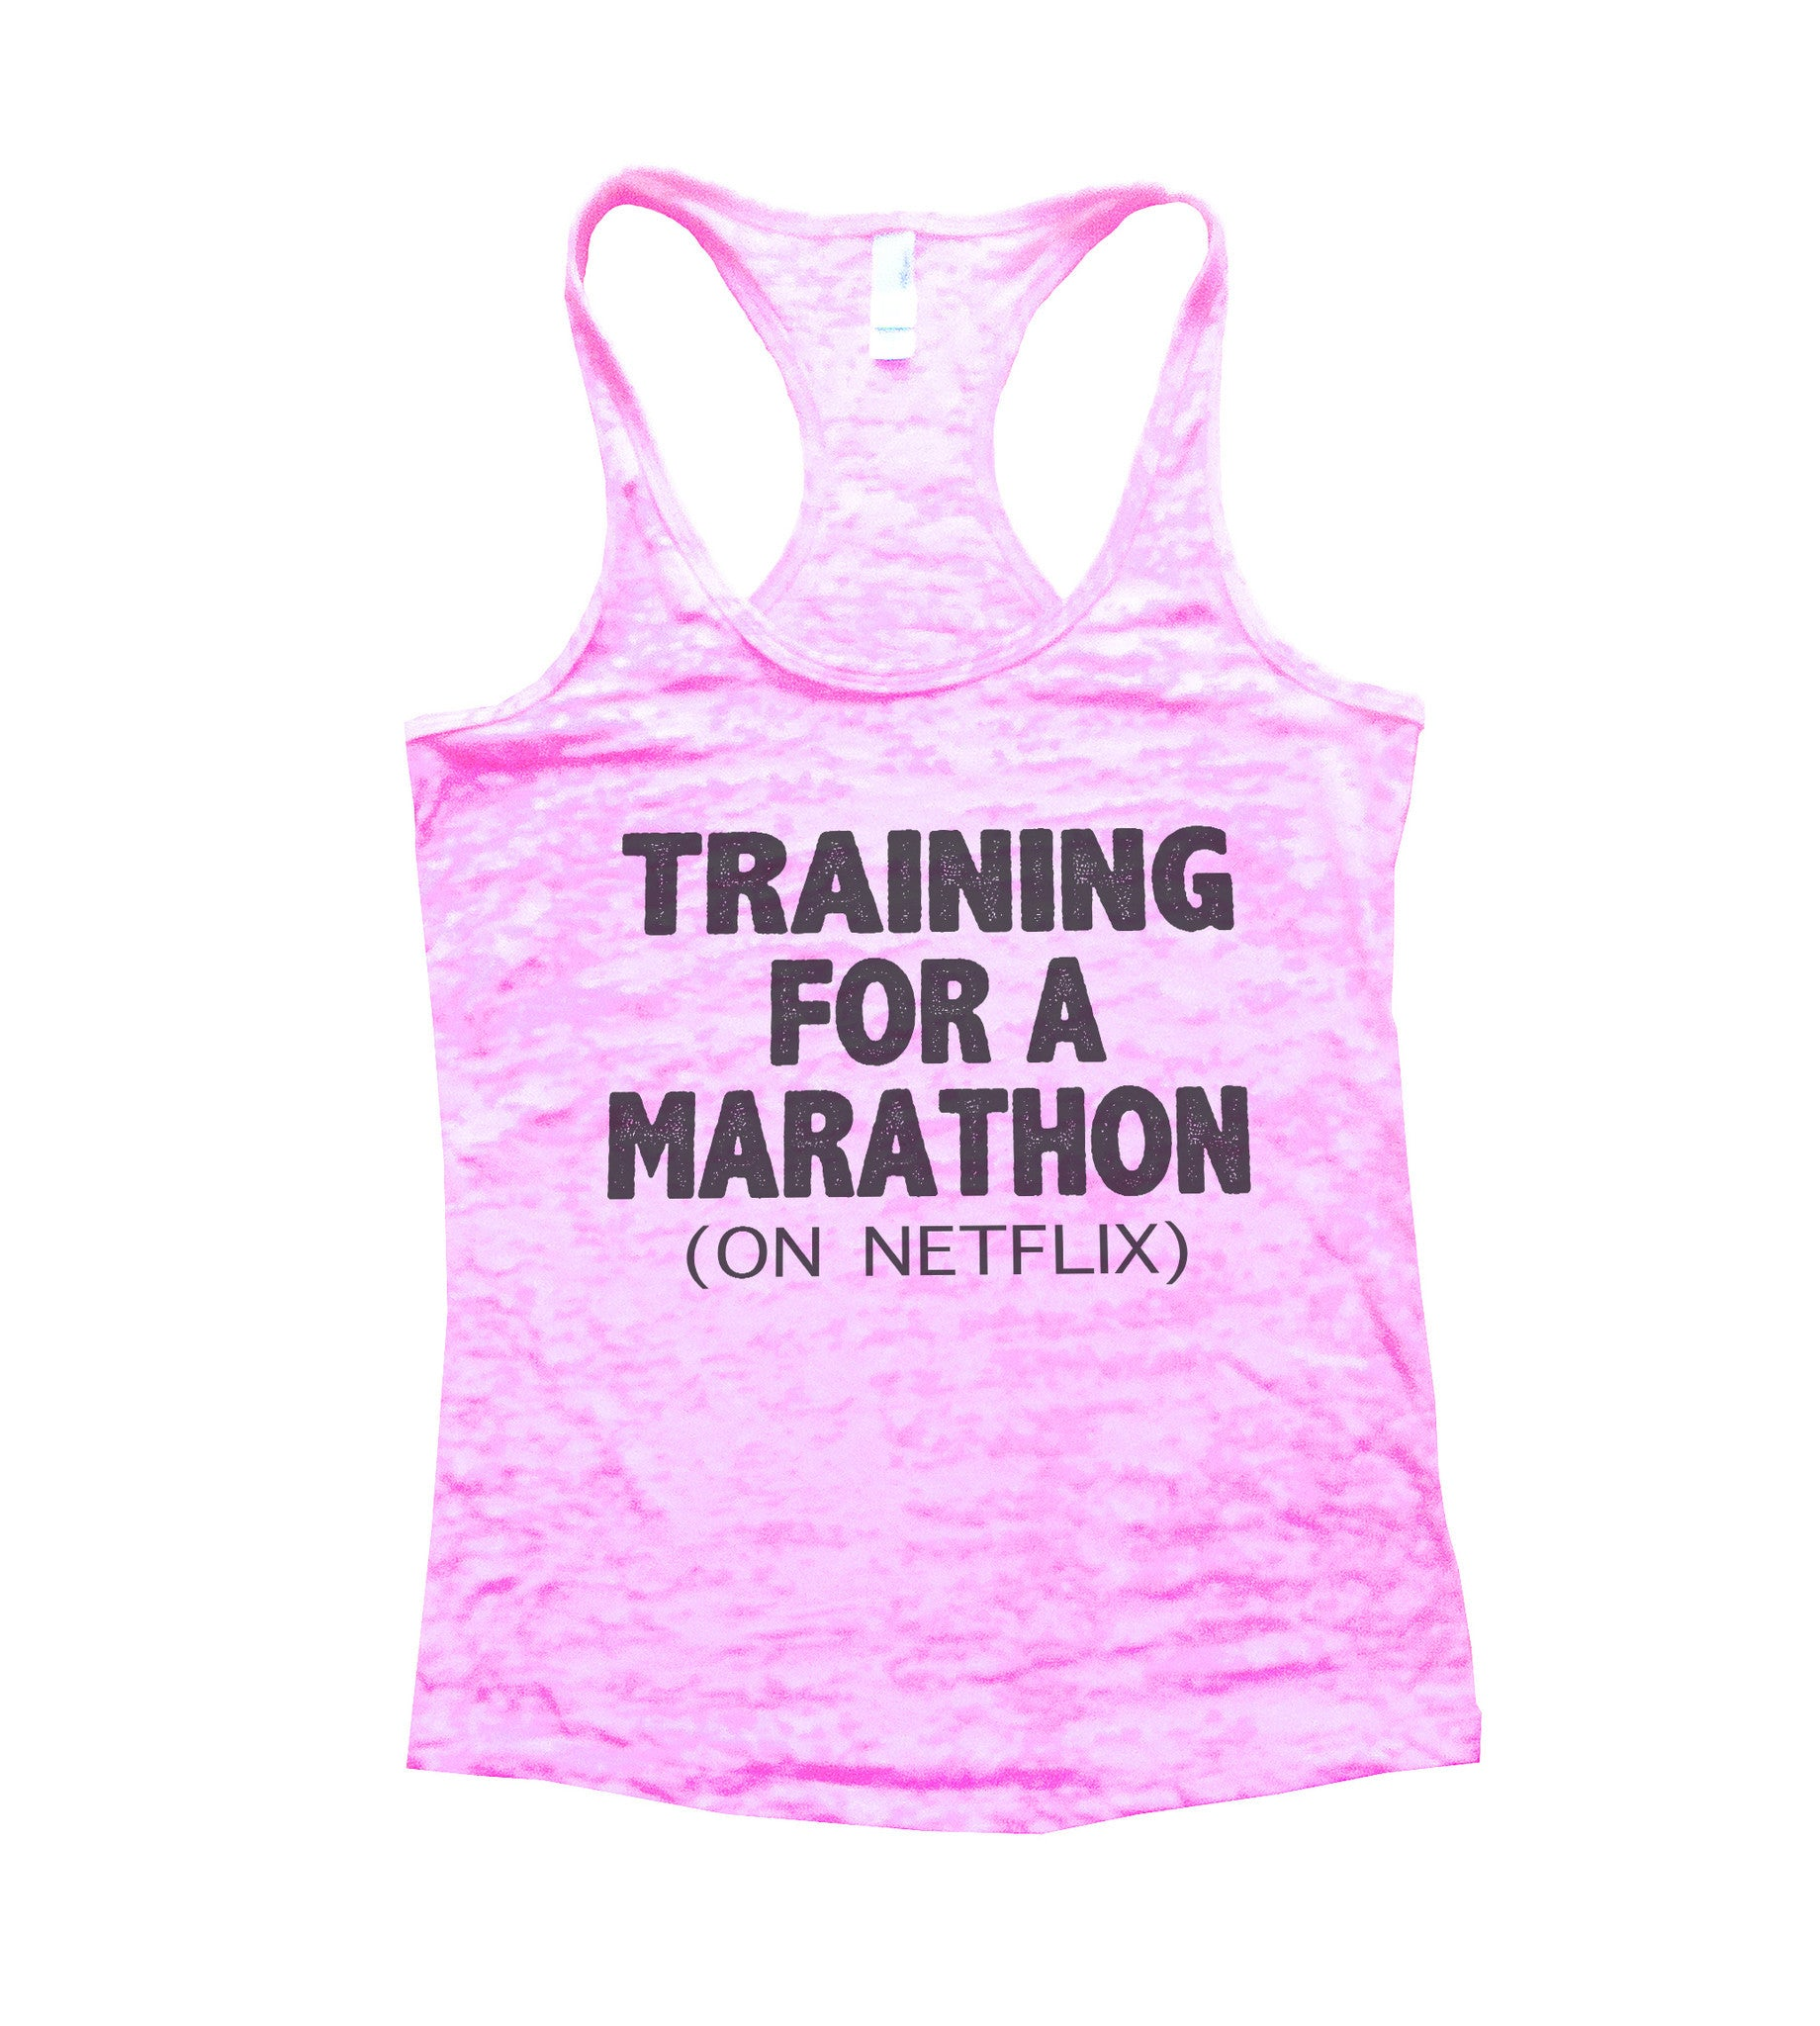 Training For A Marathon On Netflix Burnout Tank Top By BurnoutTankTops.com - 741 - Funny Shirts Tank Tops Burnouts and Triblends  - 1